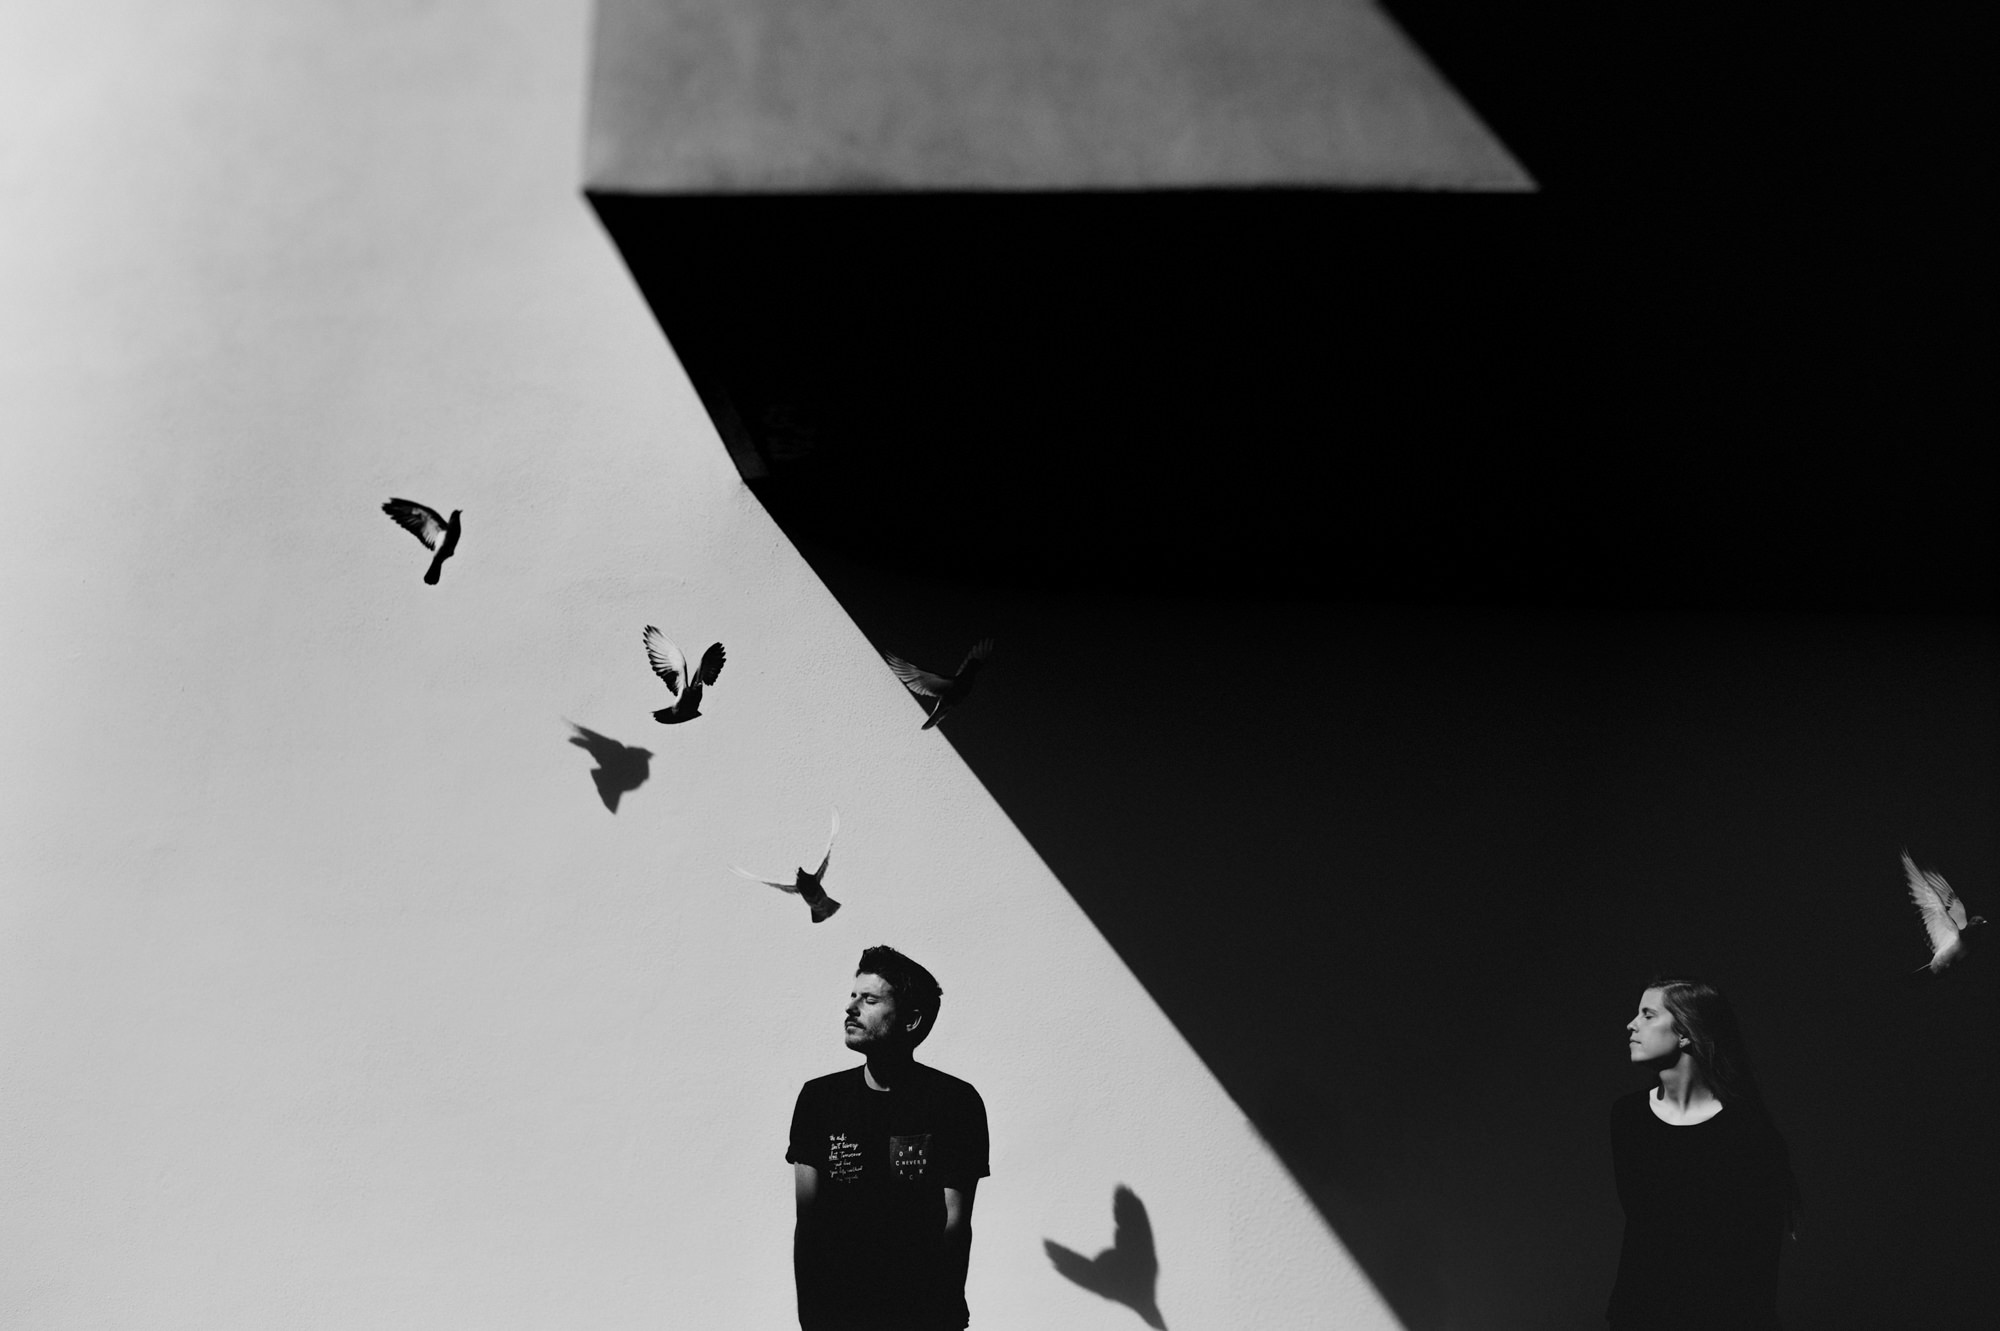 black-and-white-engagement-portrait-in-high-contrast-lighting-against-wall-with-birds-flying-worlds-best-wedding-photos-fer-juaristi-mexico-wedding-photographers